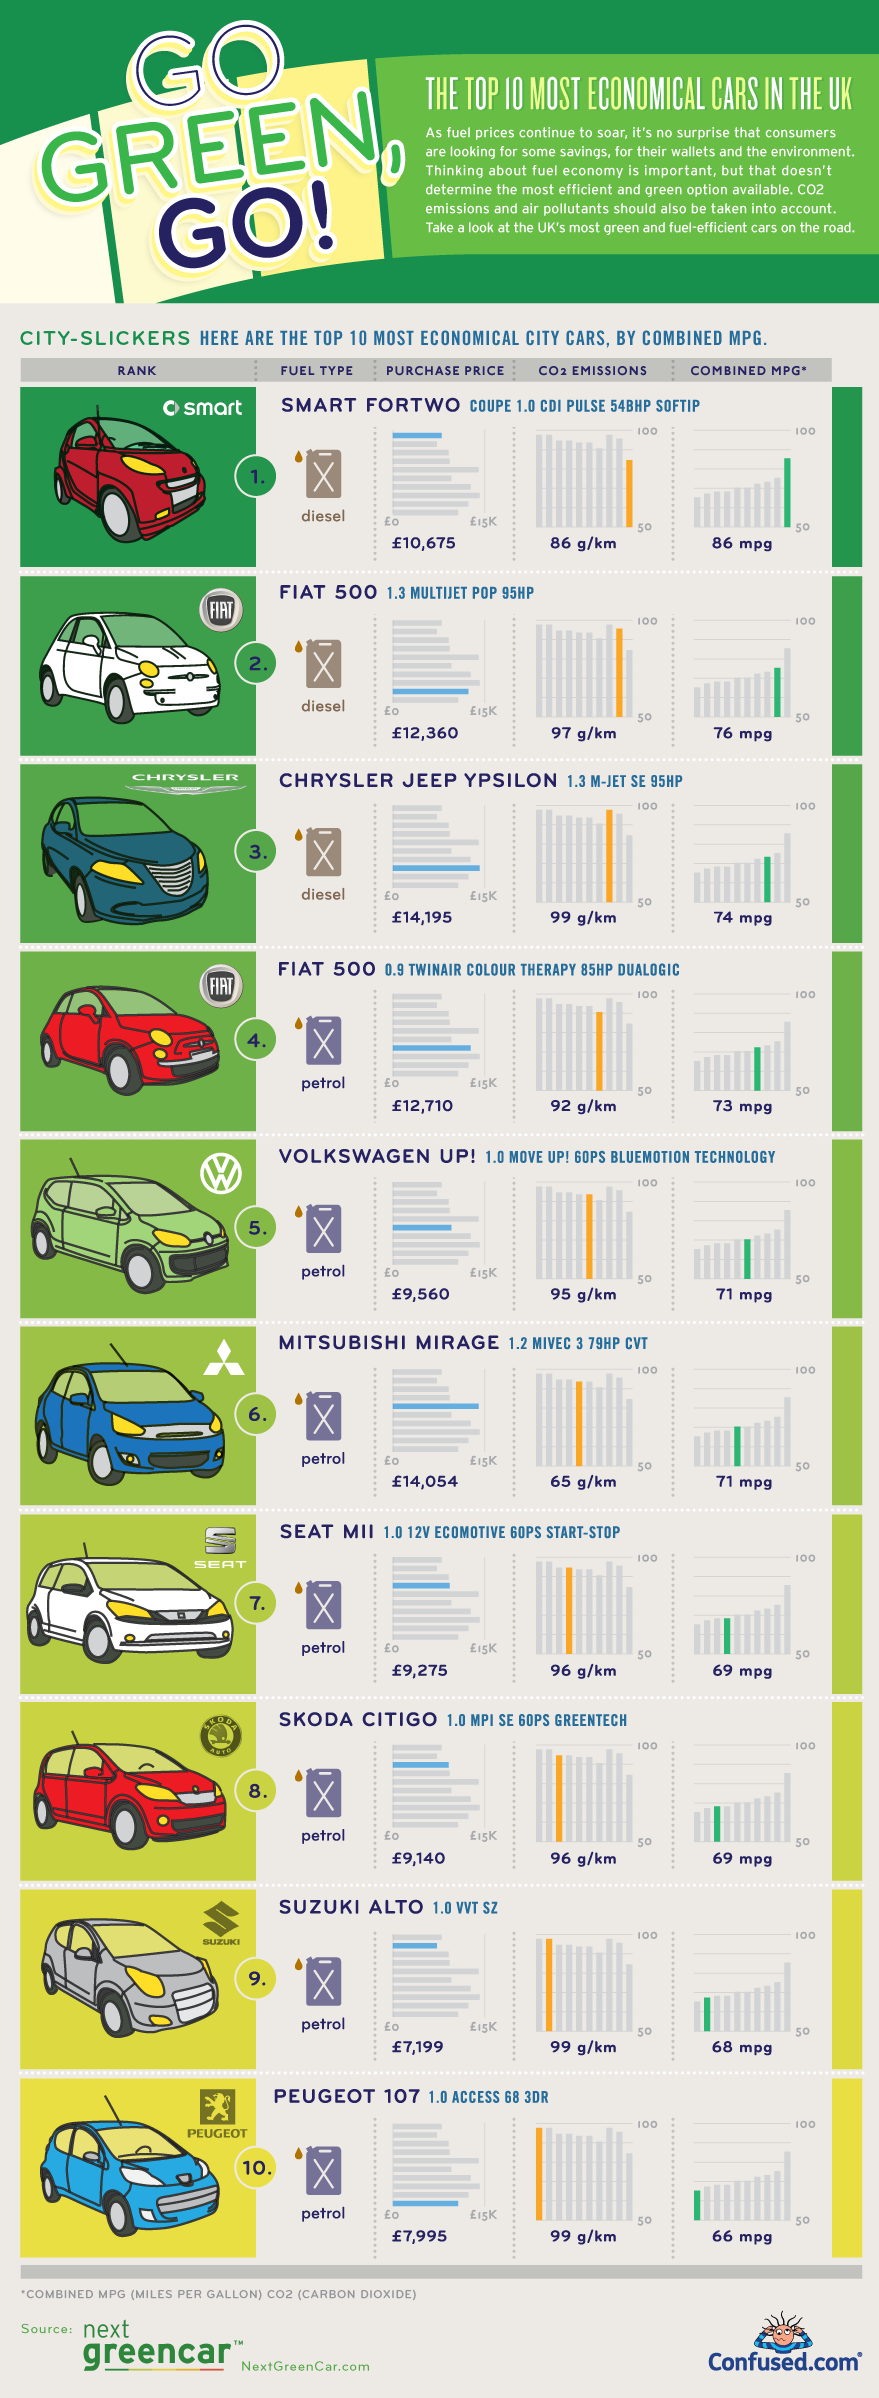 2013-03-27-top10ecocars.png